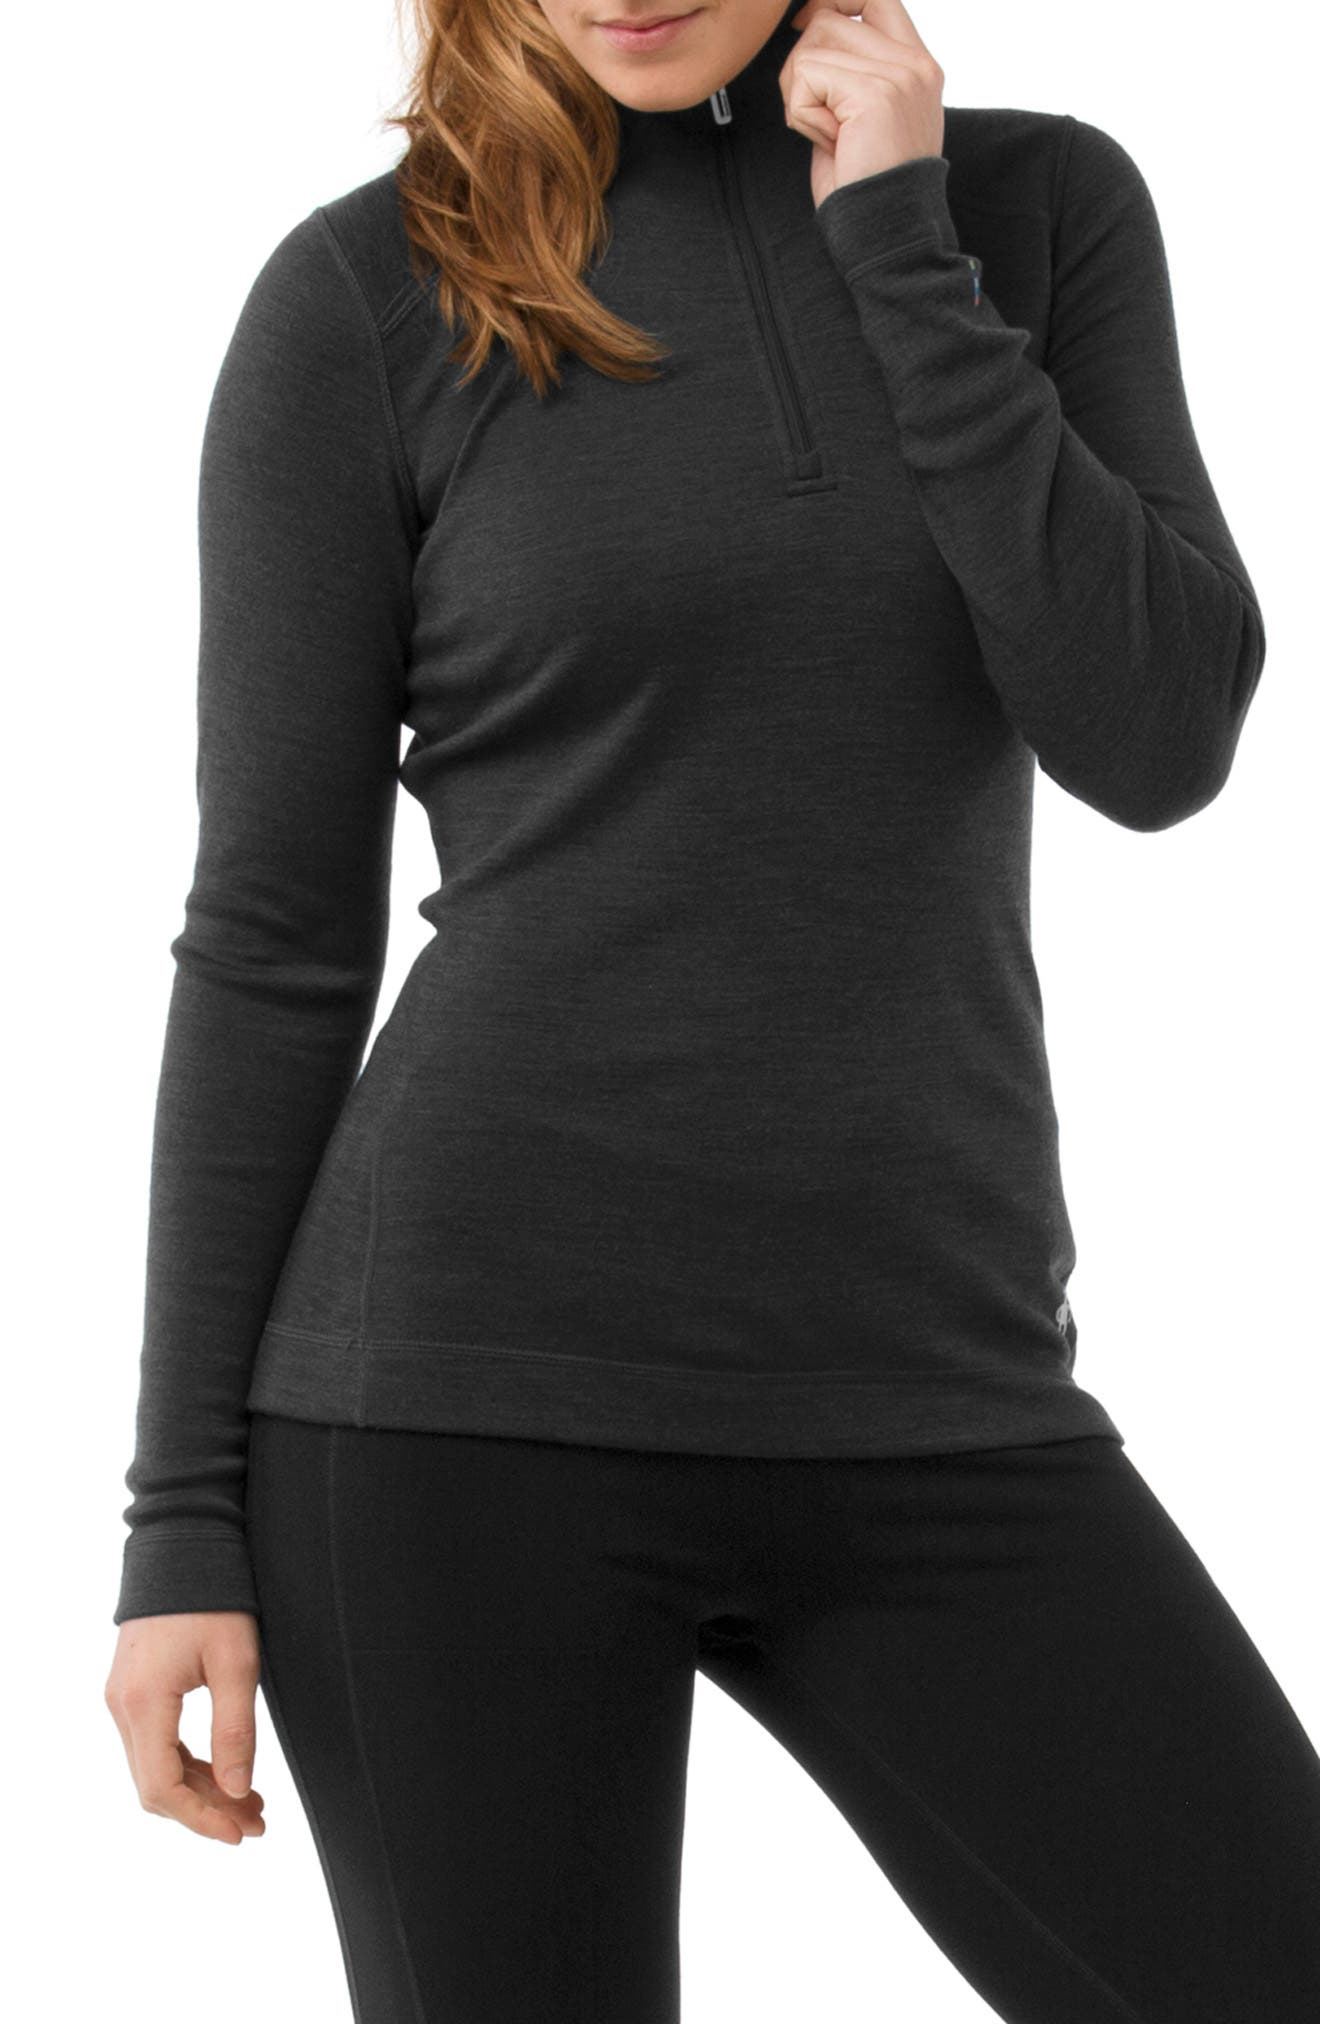 Merino 250 Base Pattern Layer Quarter Zip Top,                             Main thumbnail 1, color,                             CHARCOAL HEATHER